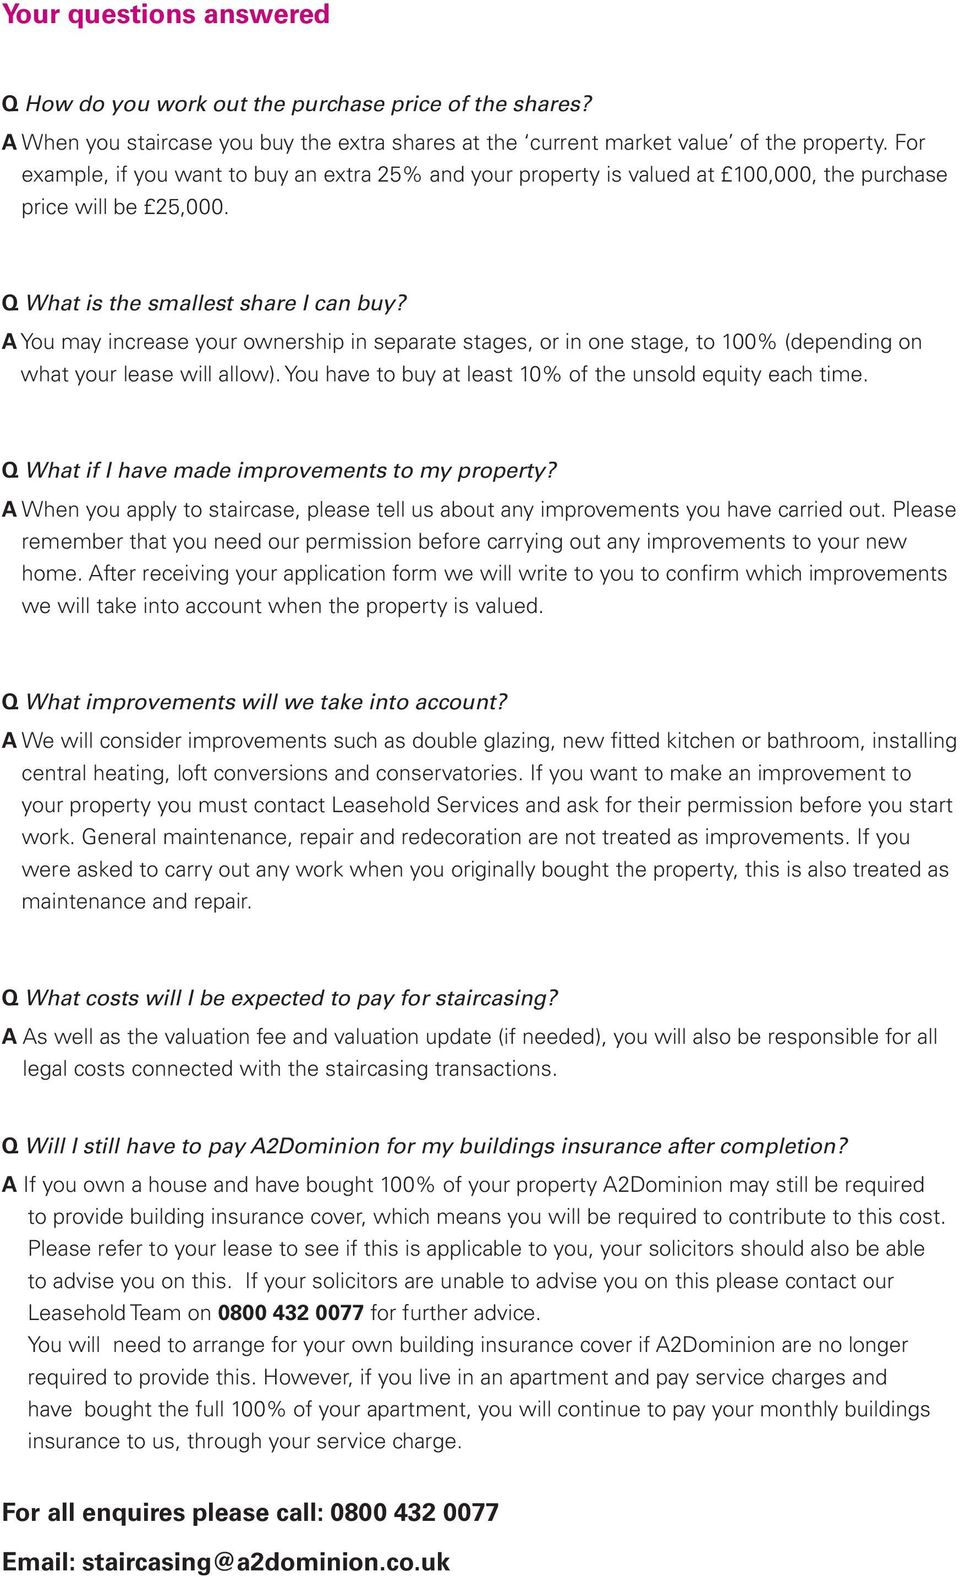 How to buy more shares in your home - PDF